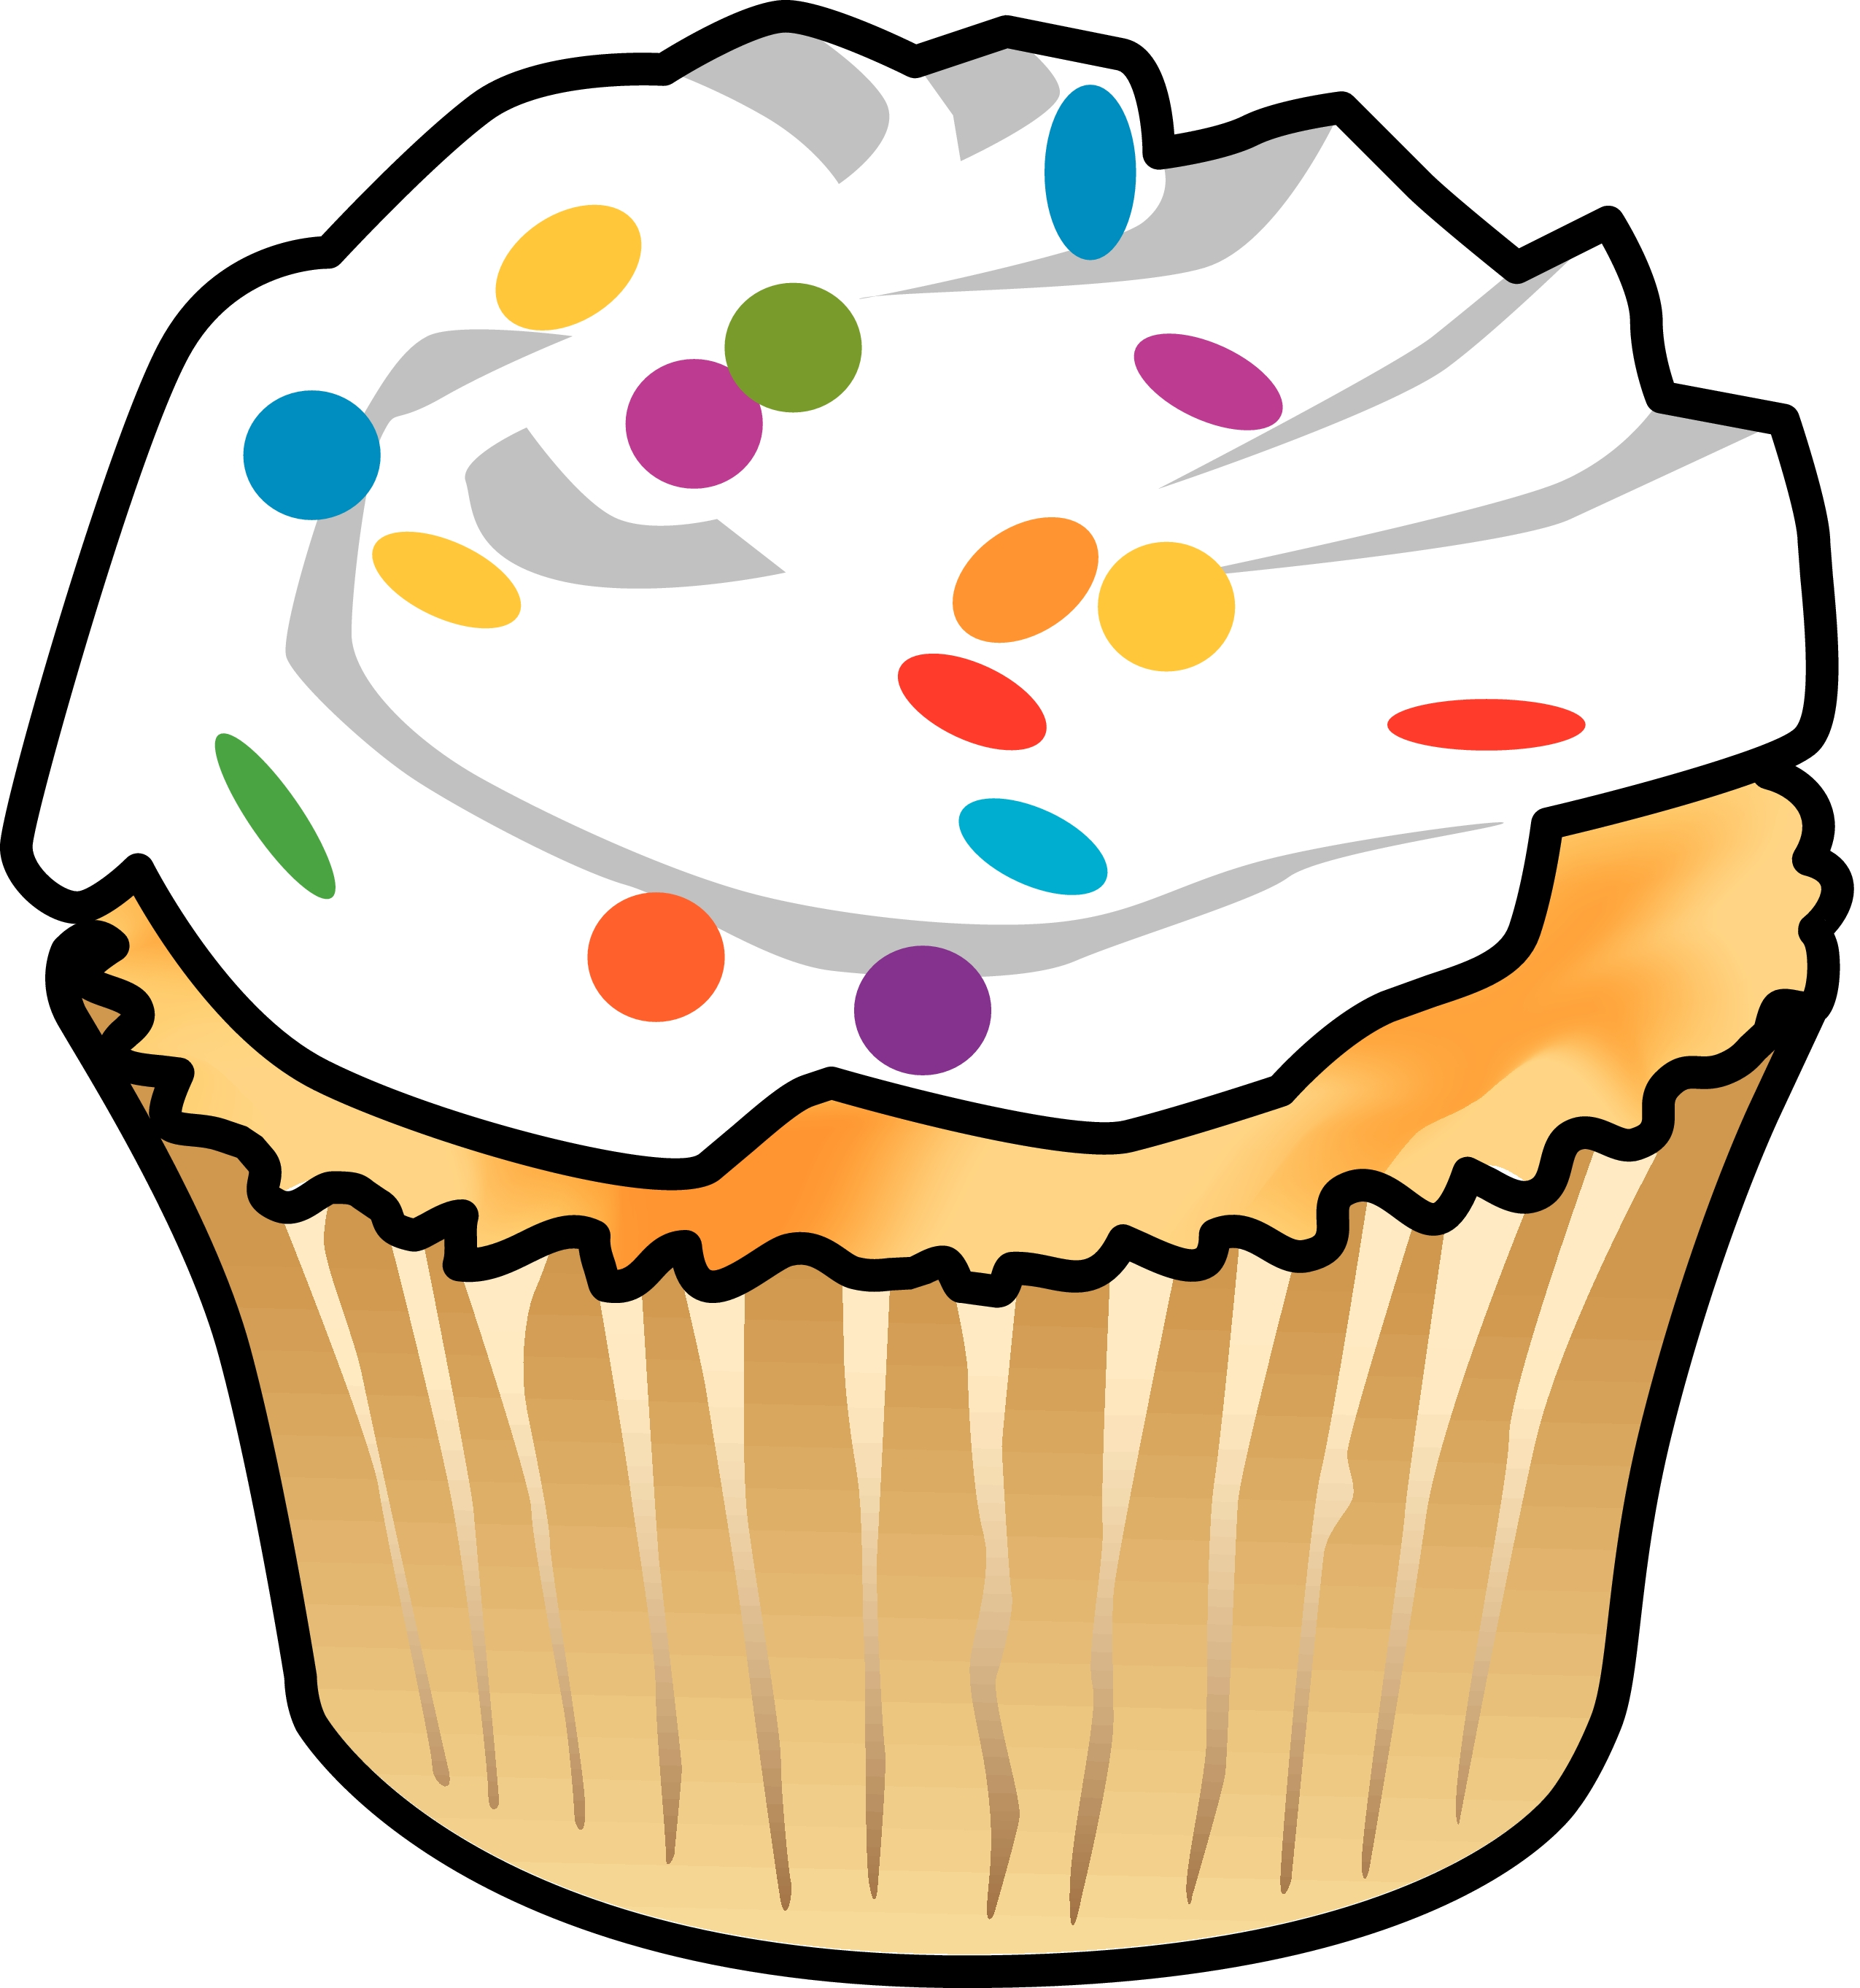 Cupcake Cupcakes Clipart Cake Sale Graphics Illustrations Free Png.